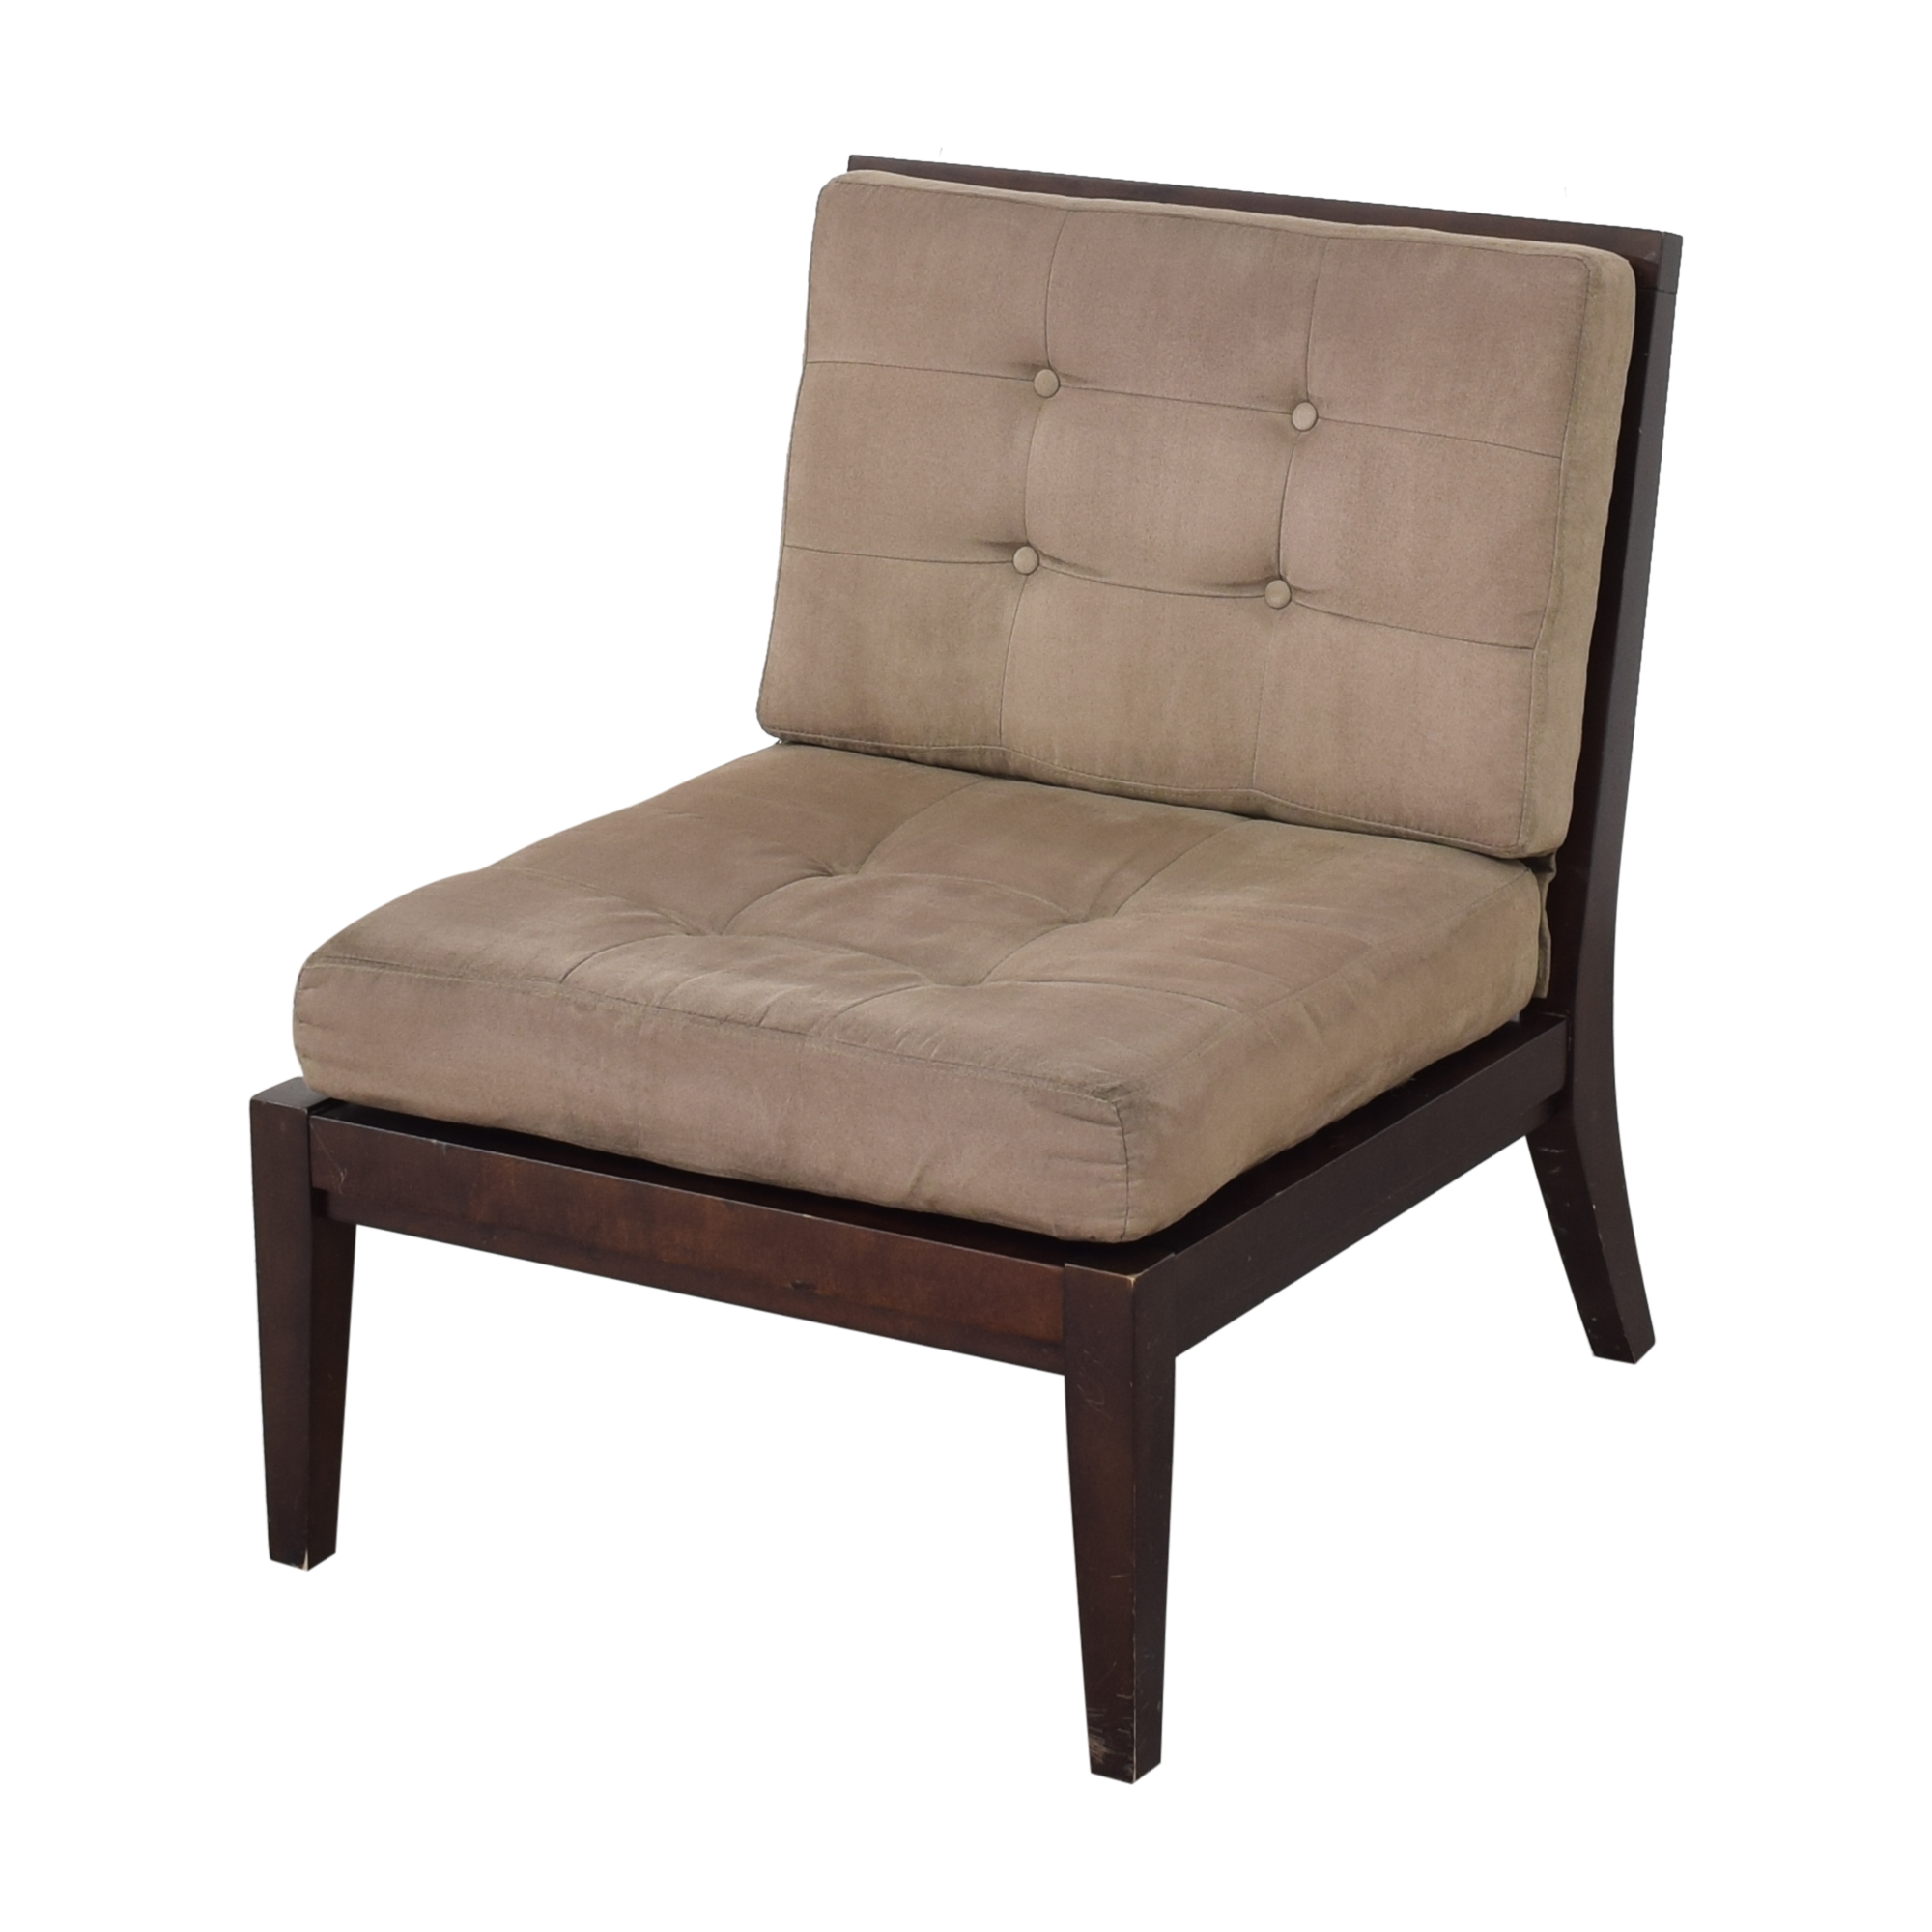 Crate & Barrel Crate & Barrel Armless Lounge Chair coupon